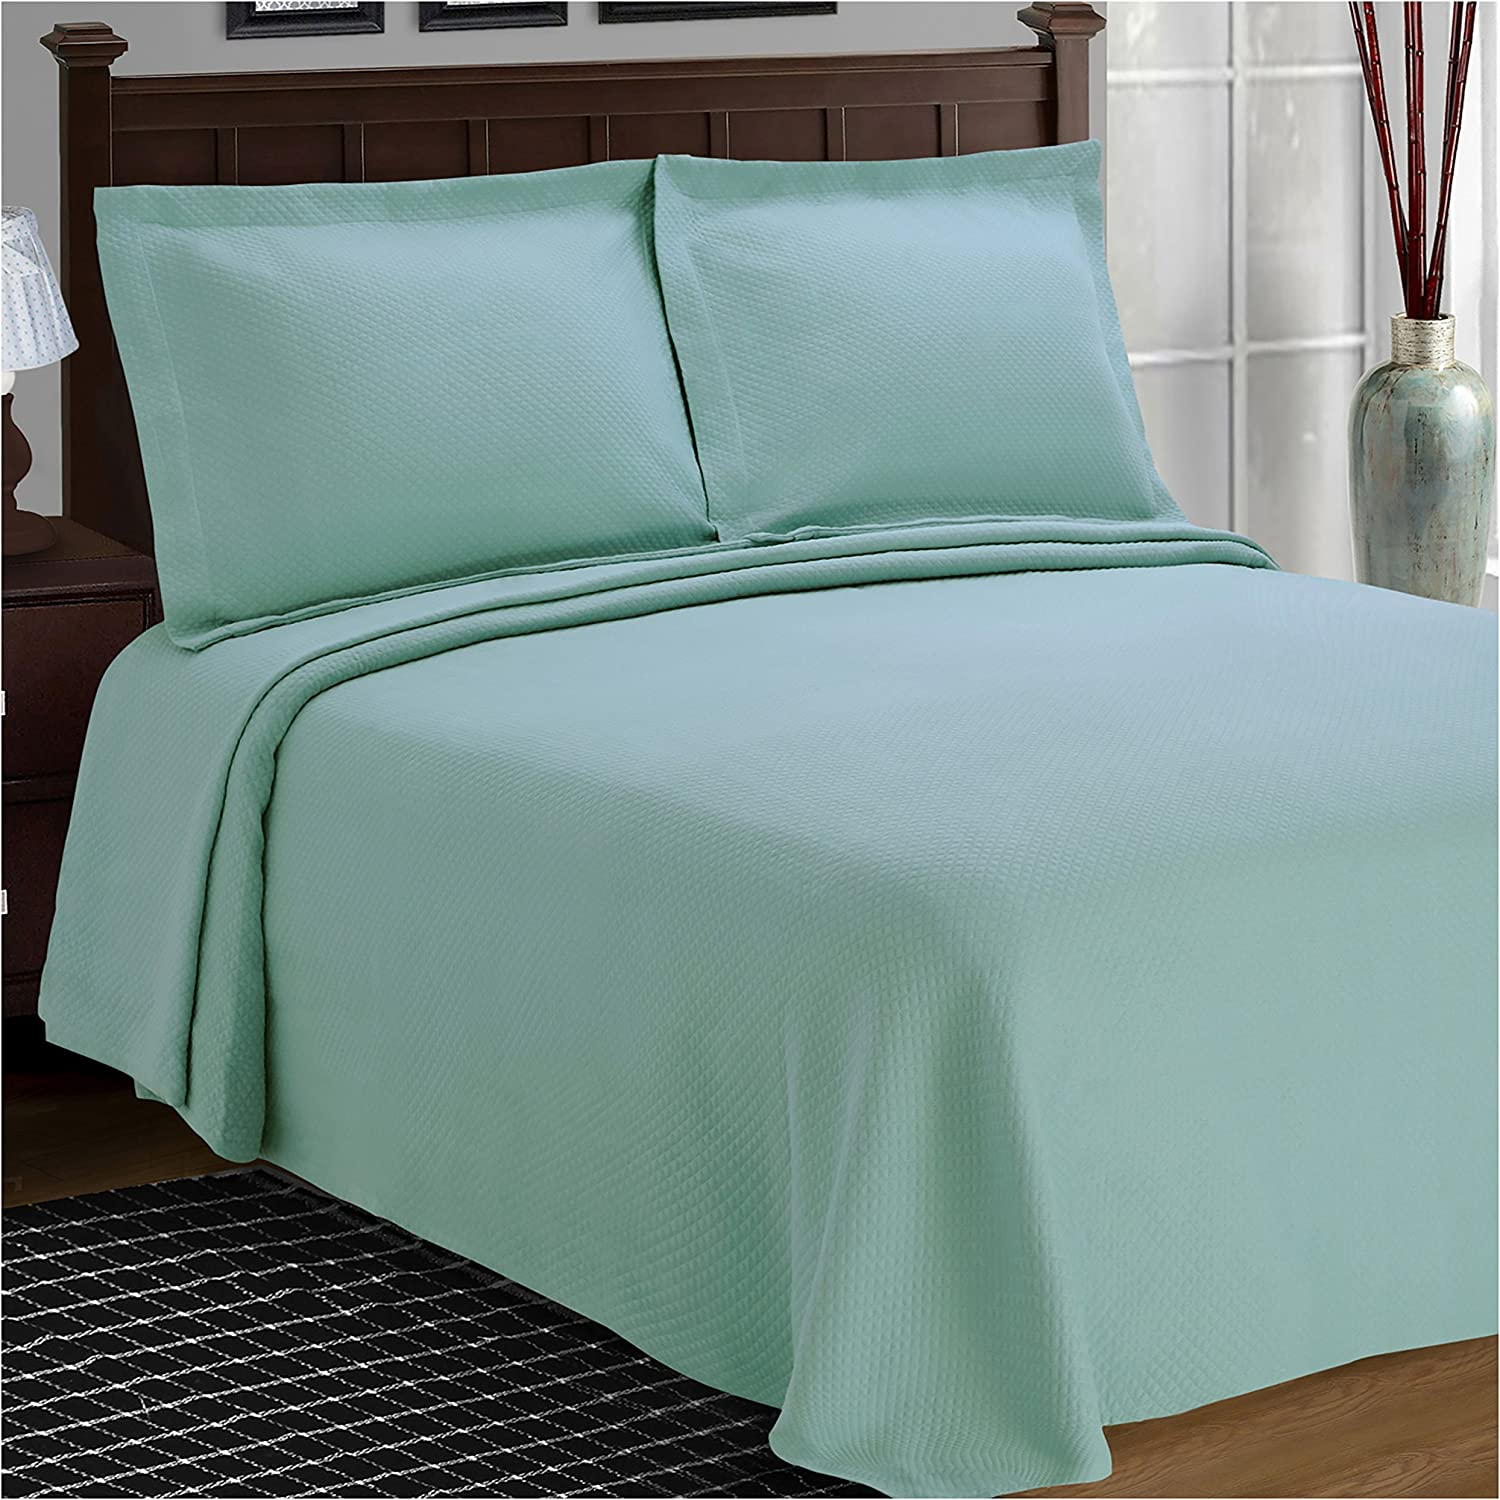 SUPERIOR Cotton Bedspread and Pillow Shams - Jacquard Matelassee Coverlet, Cotton Quilt, Aqua, Twin Size